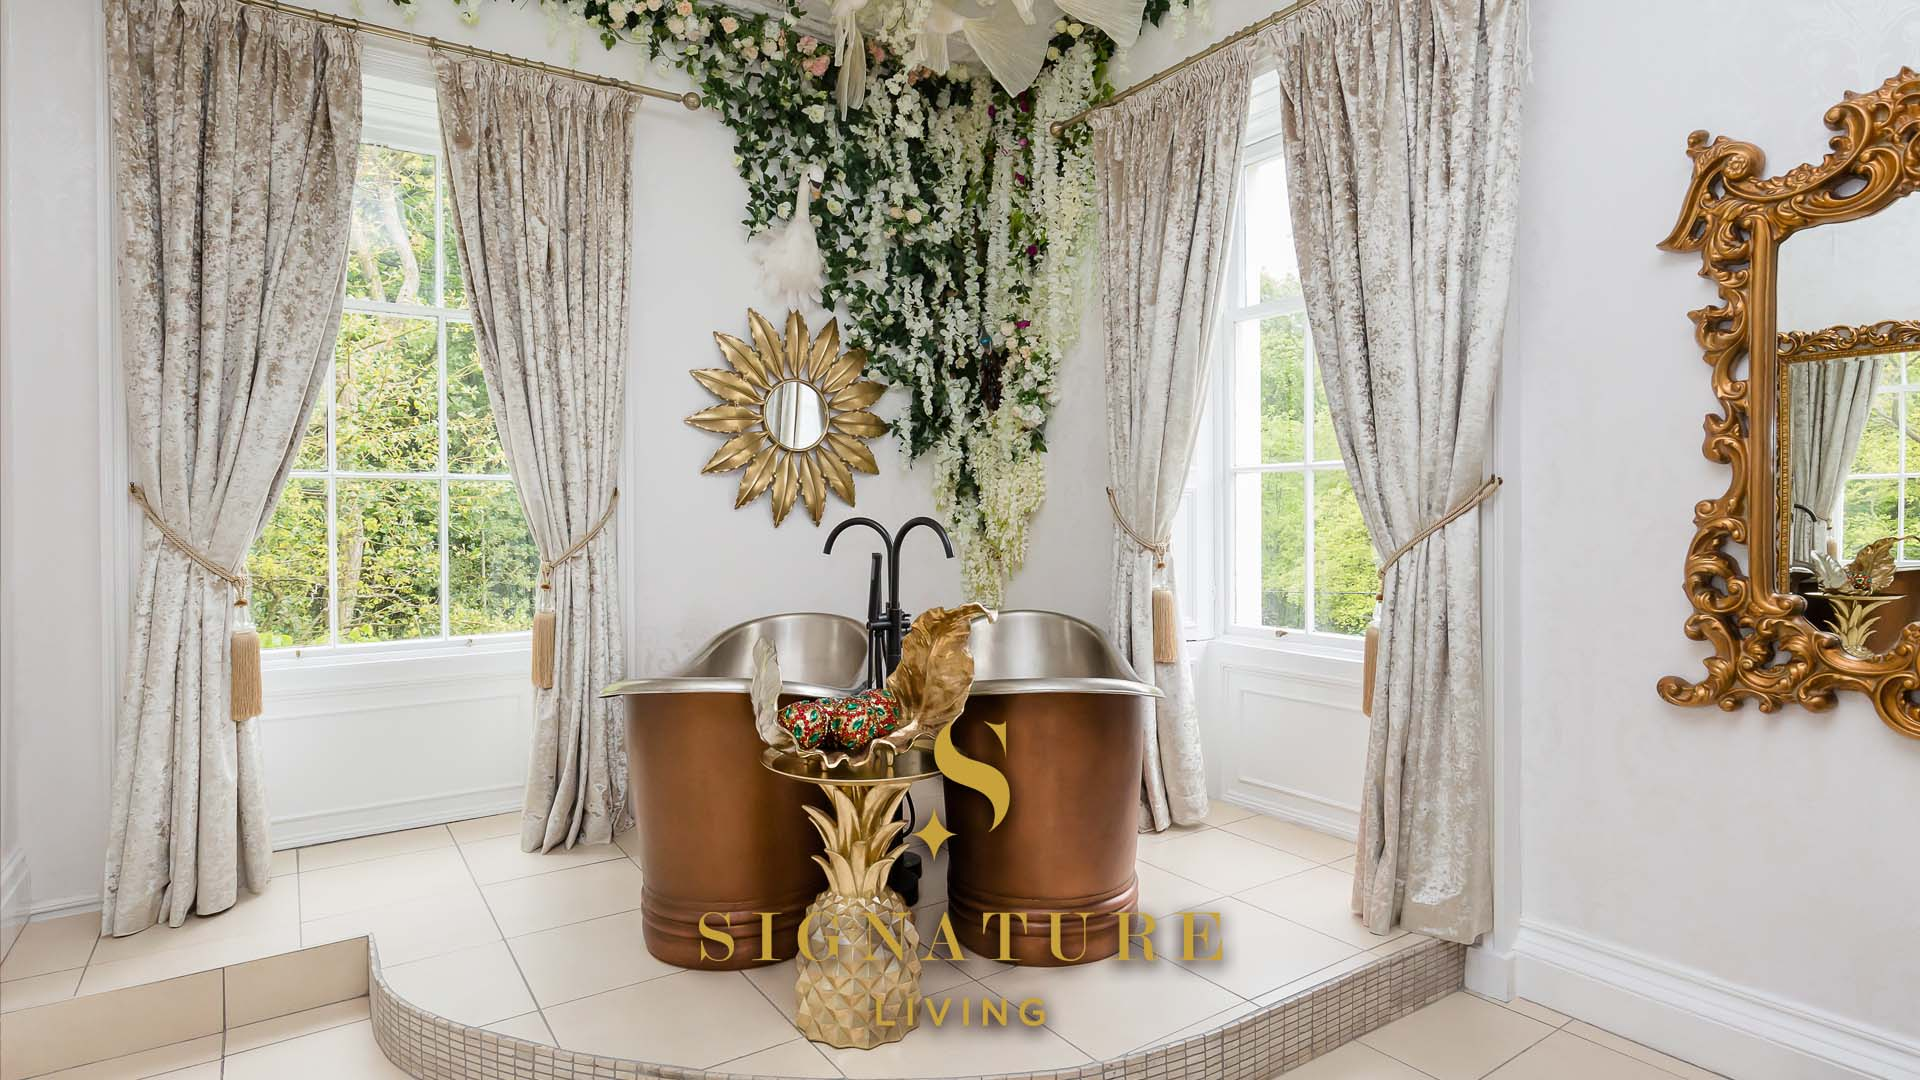 Rainhill Hall Couples Staycation by Signature Living